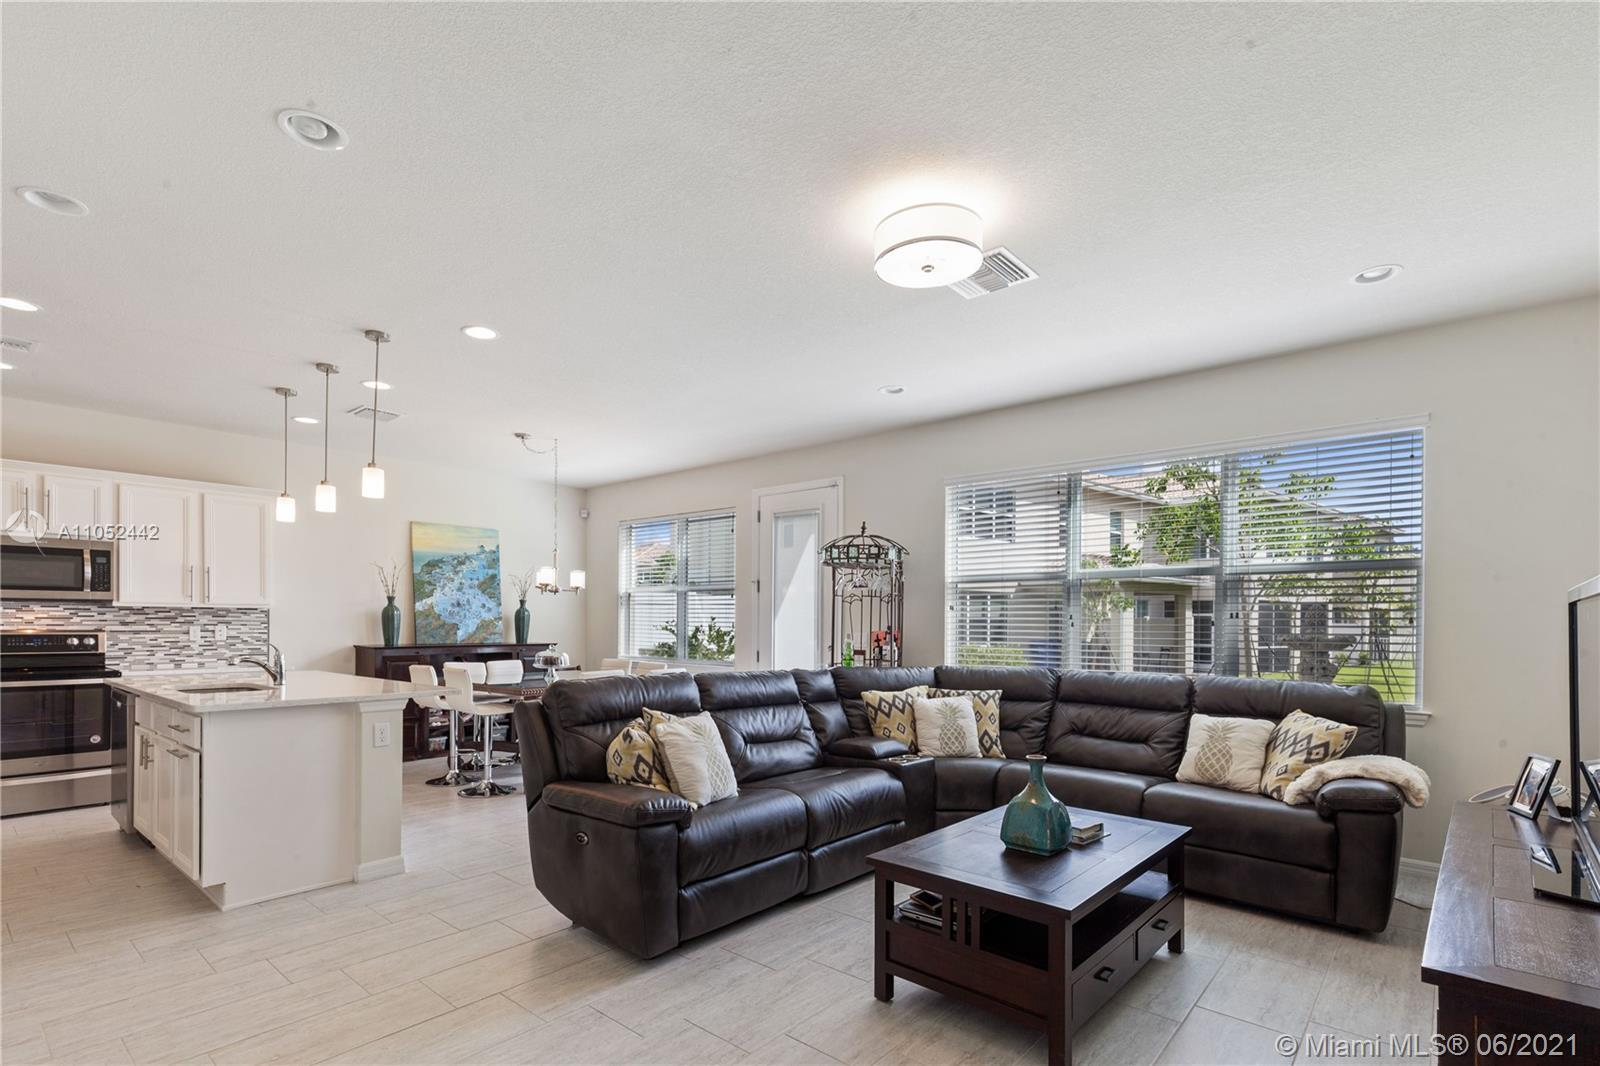 NEWER CONSTRUCTION 3 BEDS 2.5 BATHS RARITAN MODEL TOWNHOME, FEATURING UPGRADED KITCHEN, WOOD-LIKE TI